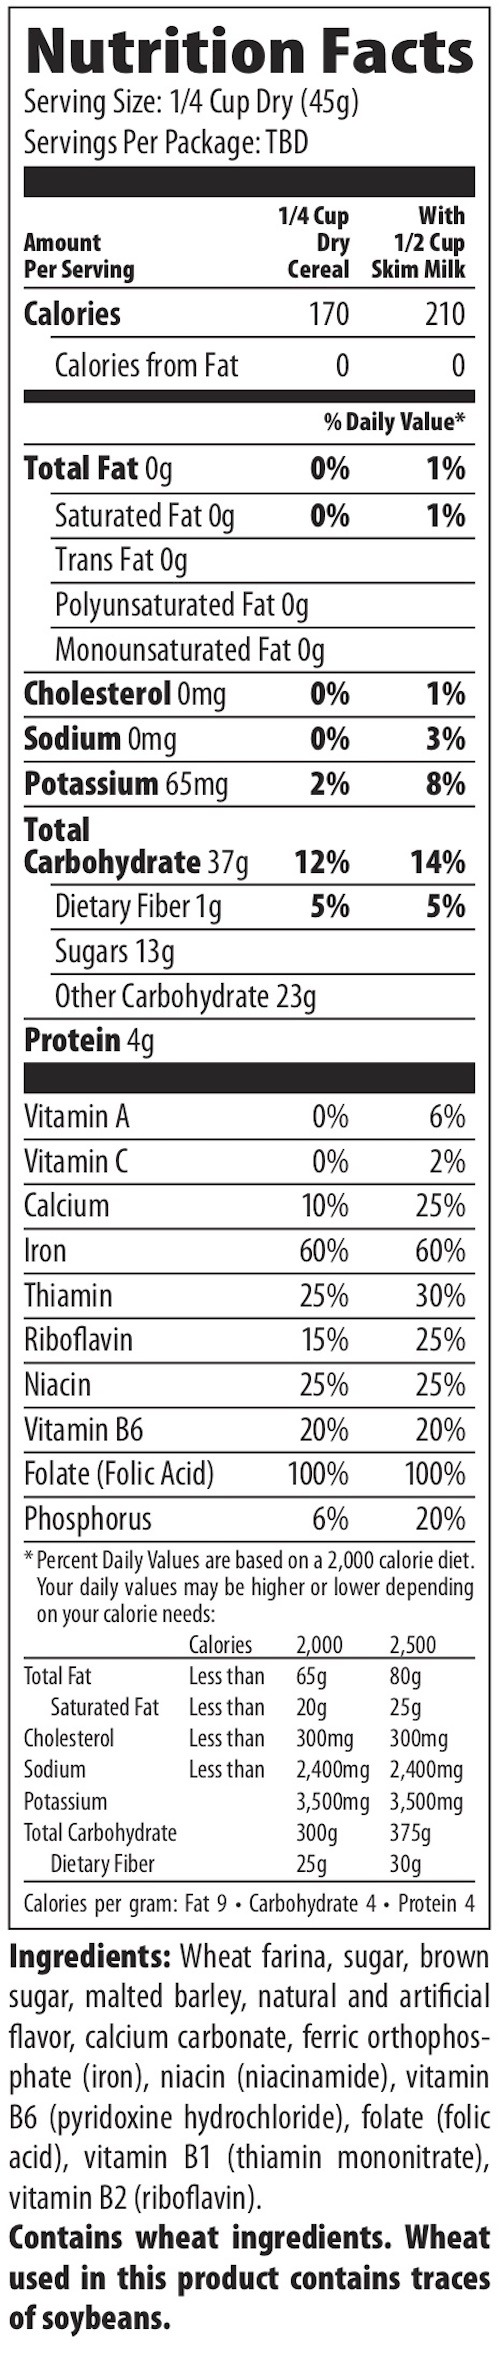 Nutrition Facts for Malt-O-Meal Maple & Brown Sugar Hot Wheat